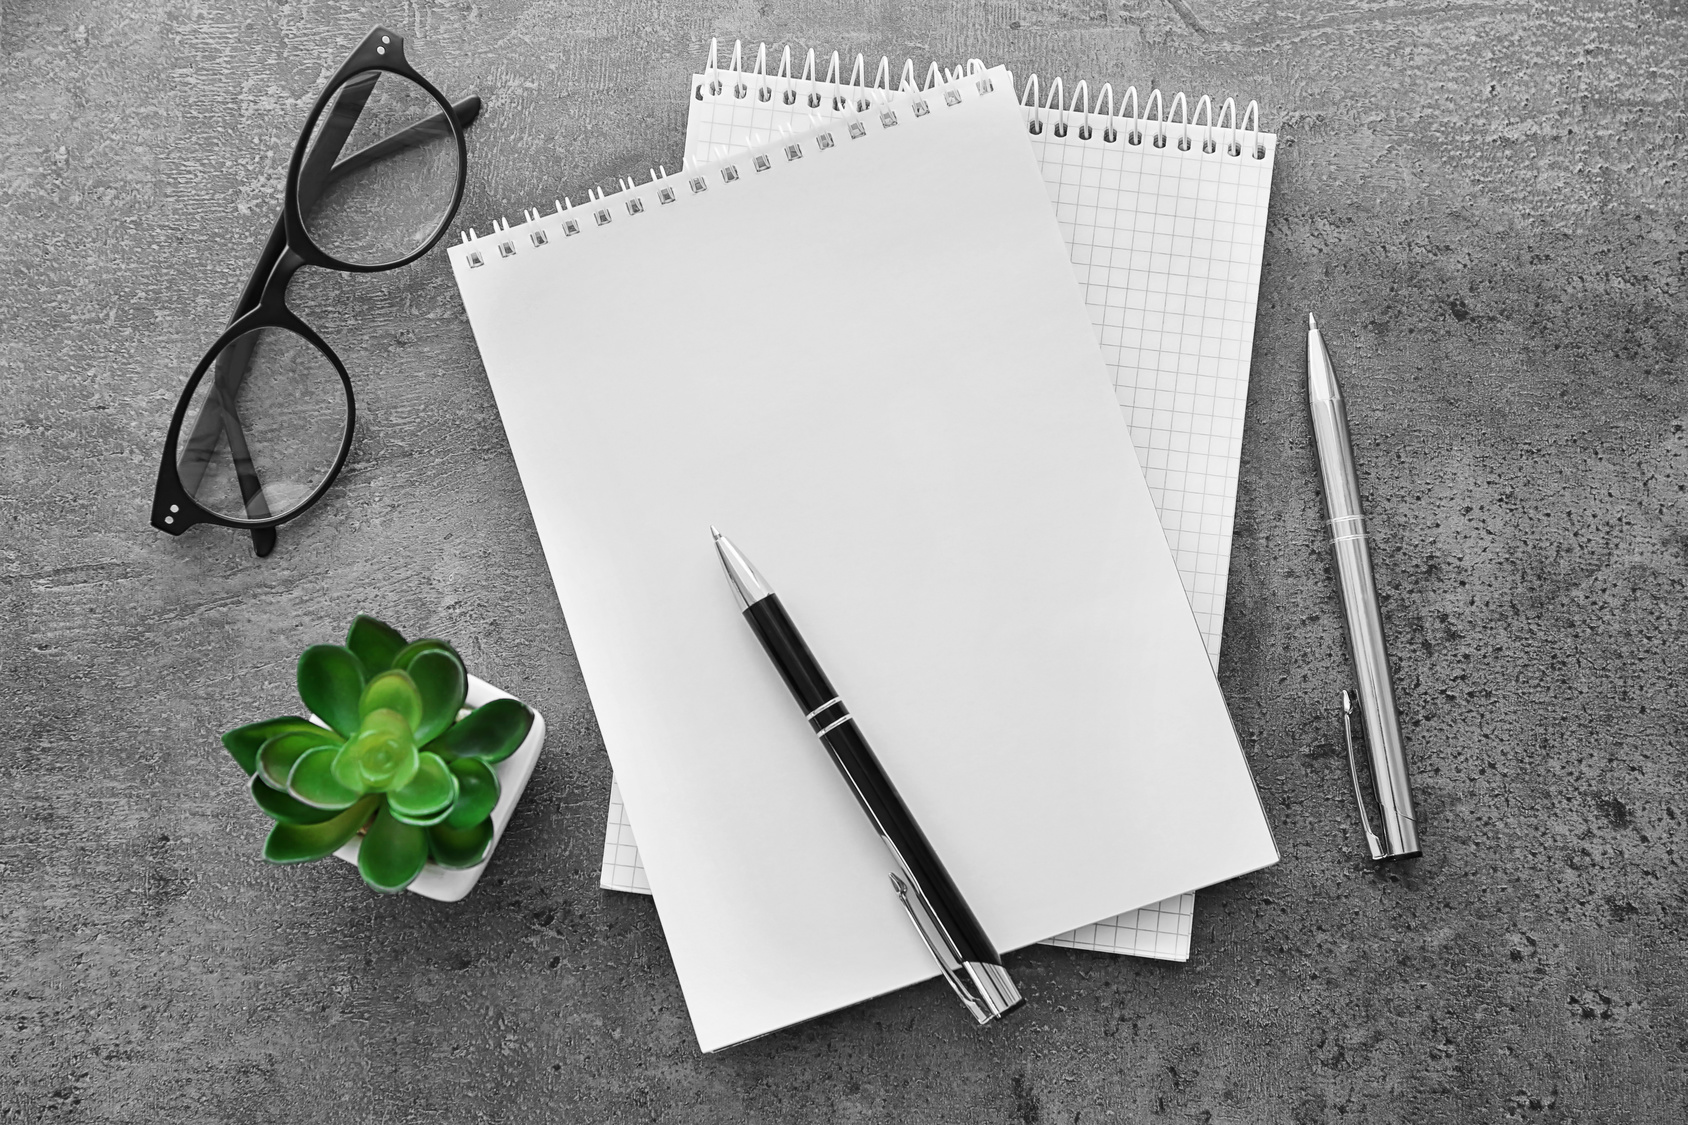 School notebook with glasses and green plant on table